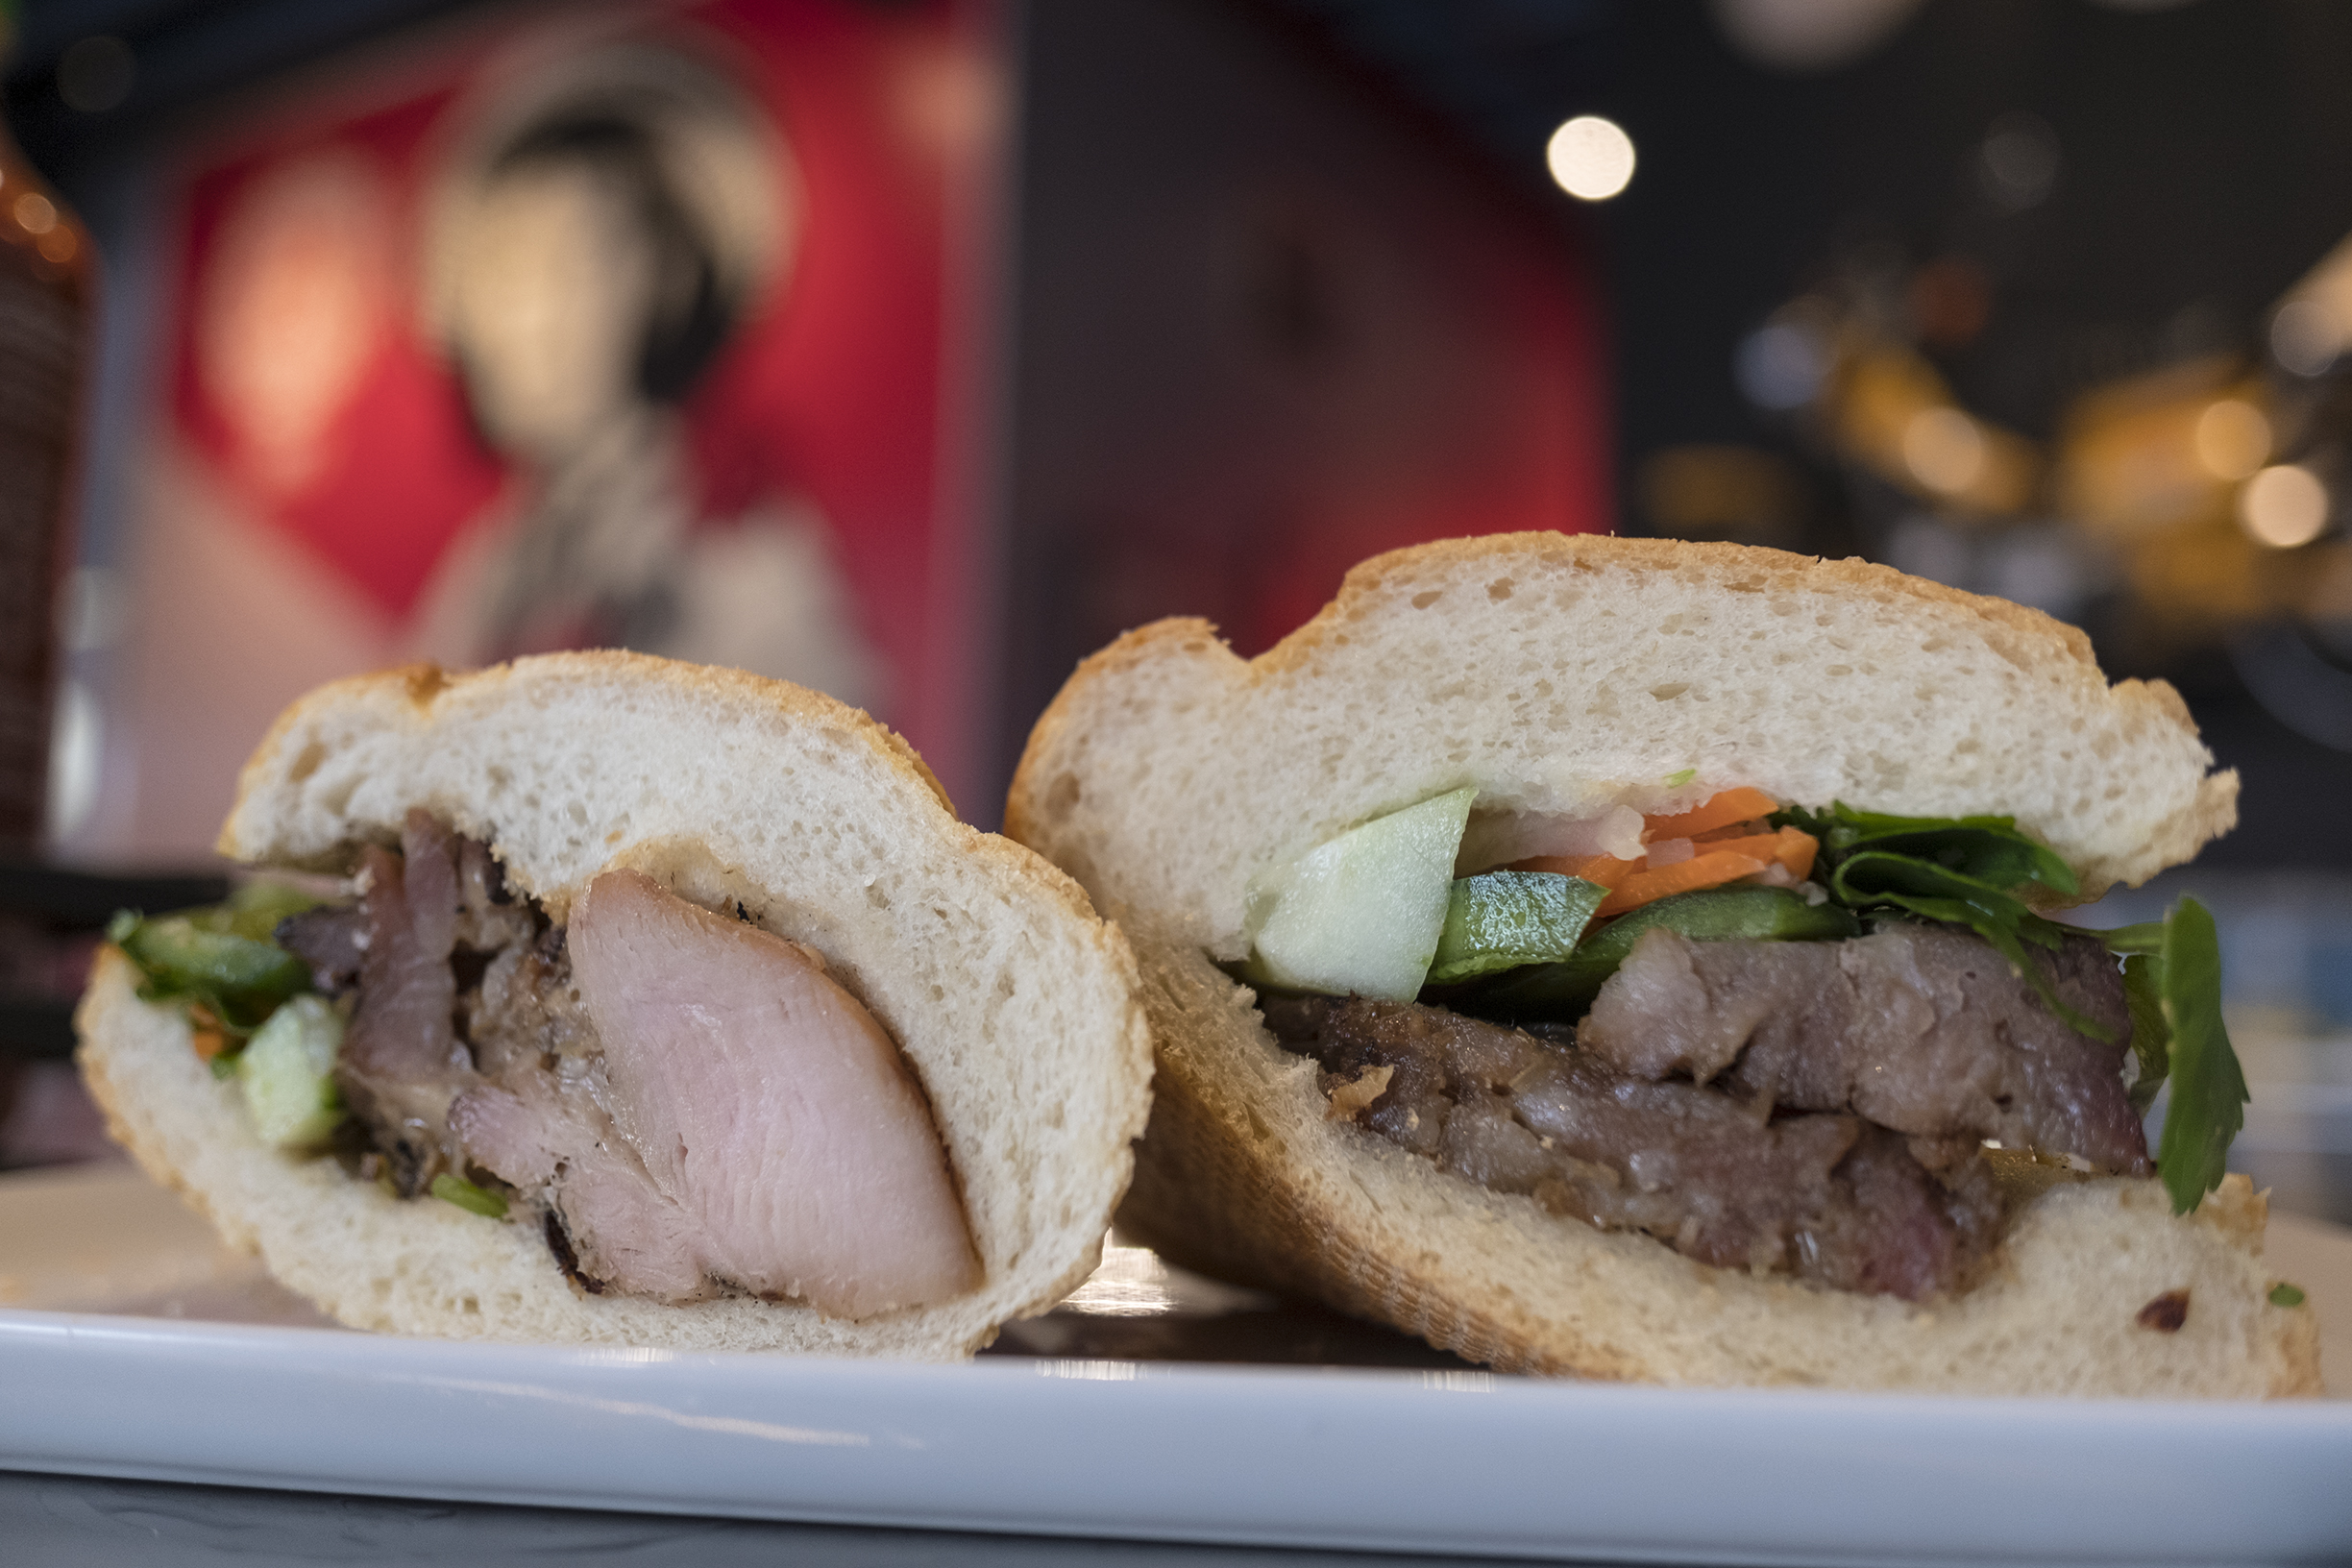 Banh mi served til 4pm, but not as flavorful as City Heights counterparts.